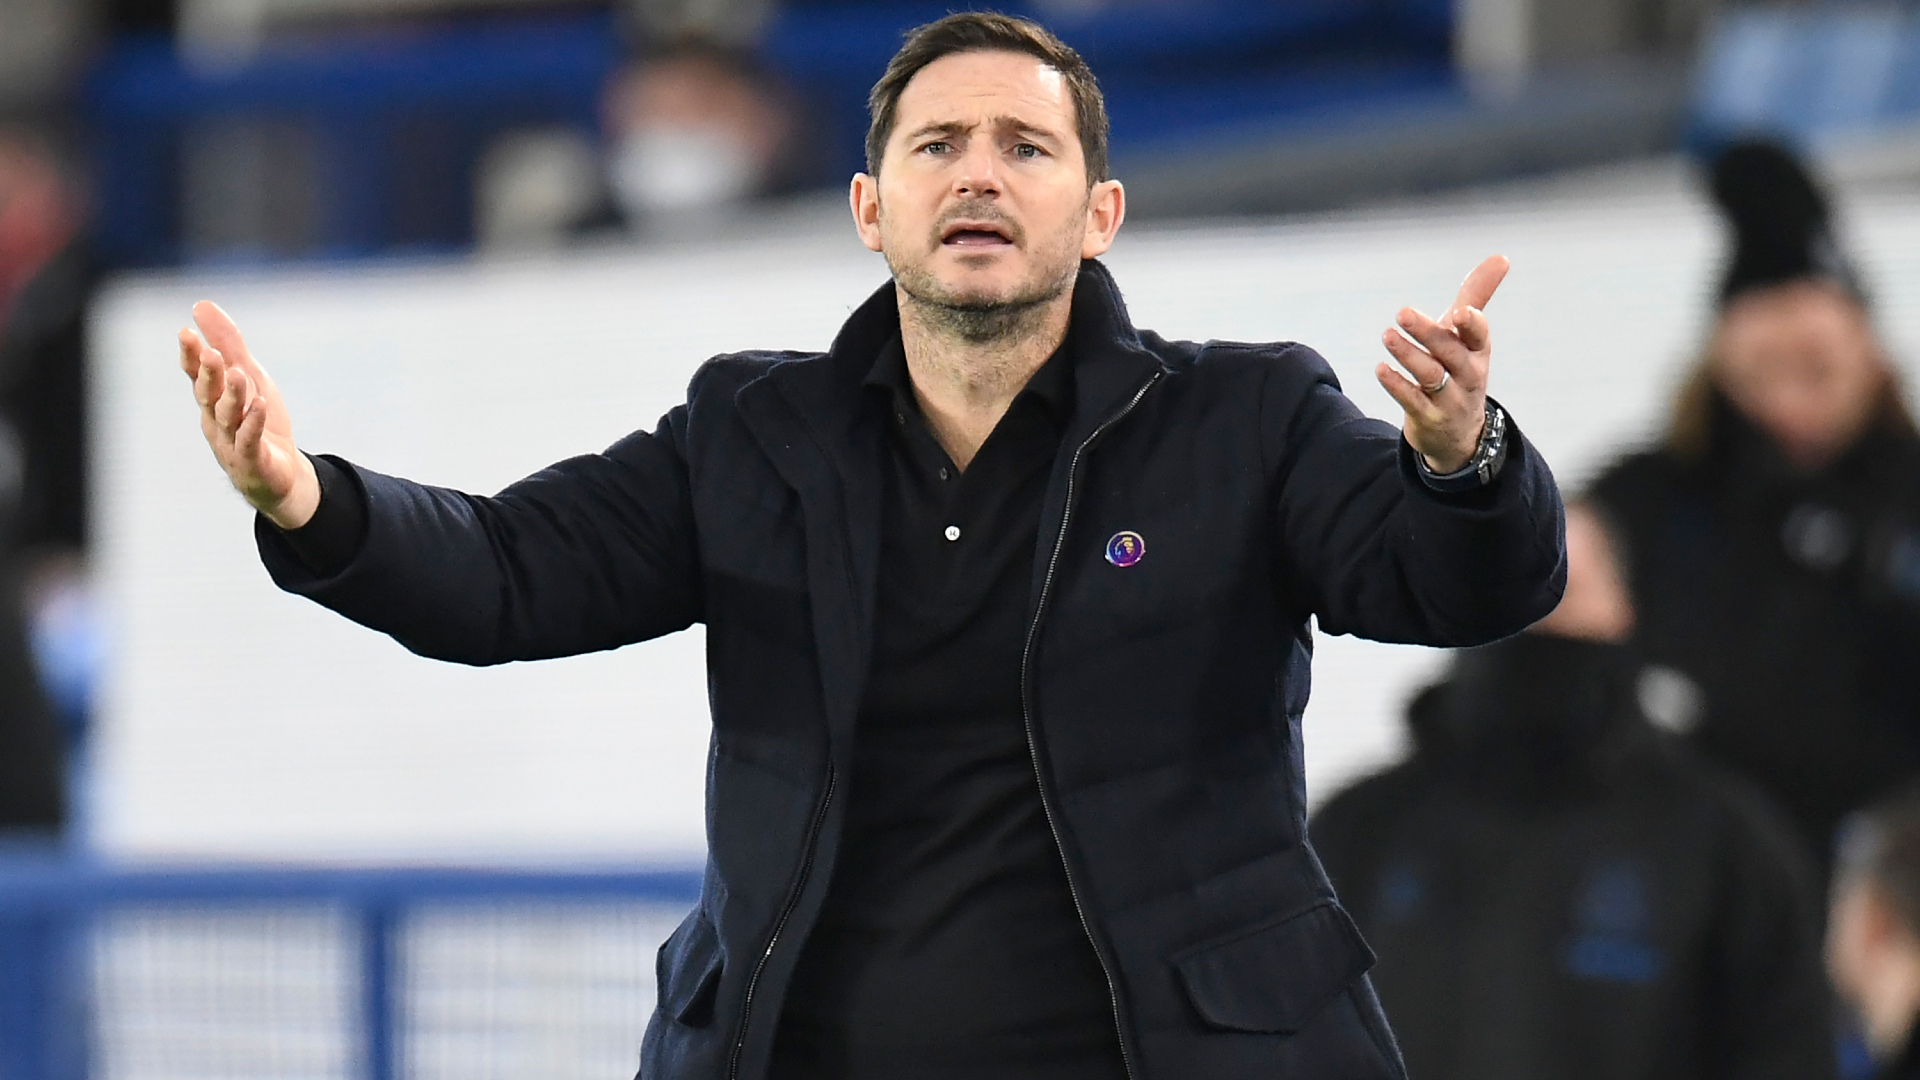 'Chelsea have got history so Lampard sacking no surprise' - Gerrard 'gutted' for former England team-mate